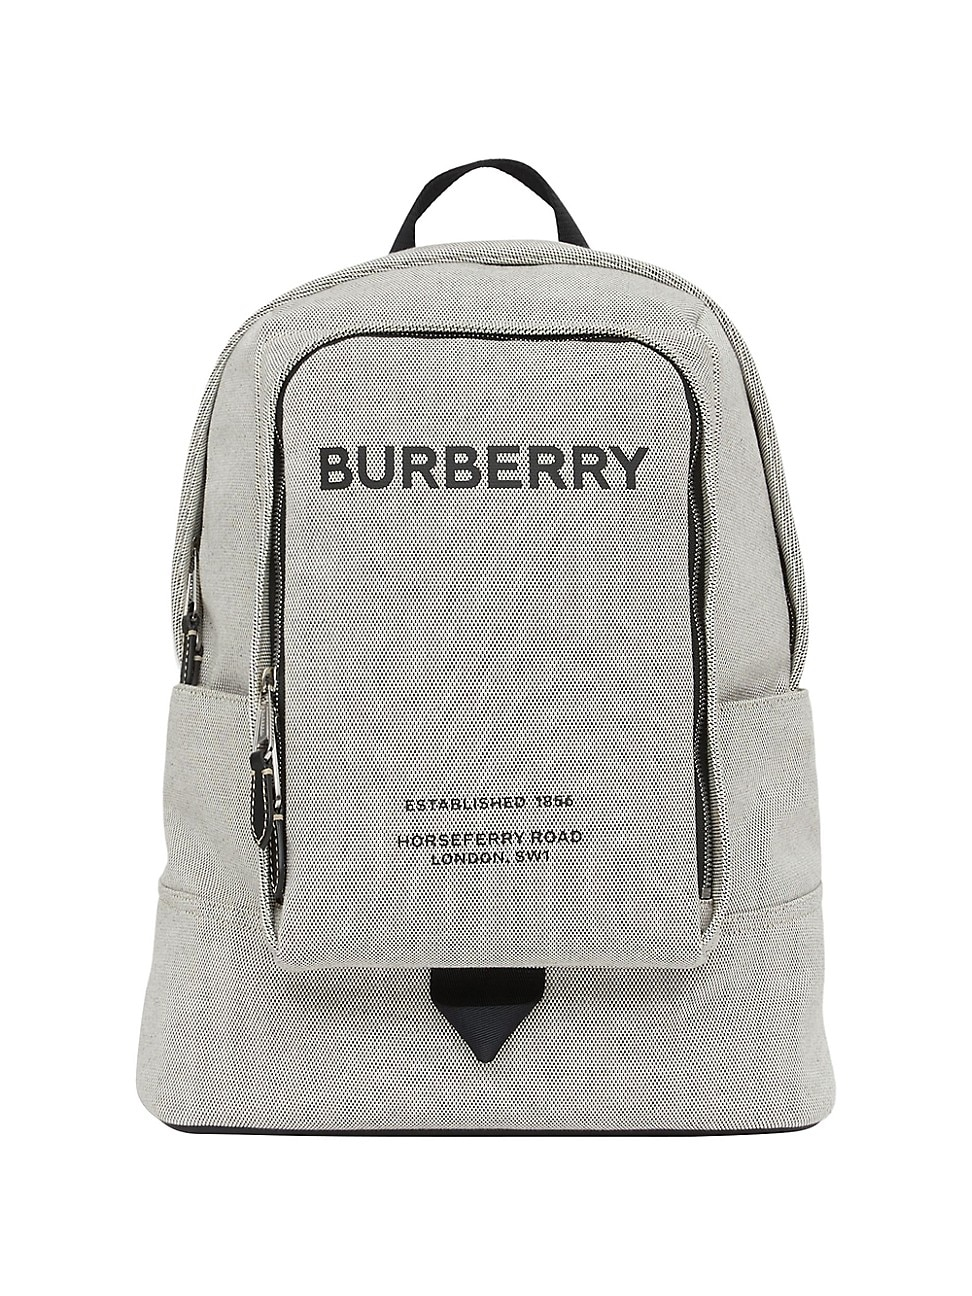 Burberry MEN'S LARGE LOGO PRINT COTTON CANVAS BACKPACK